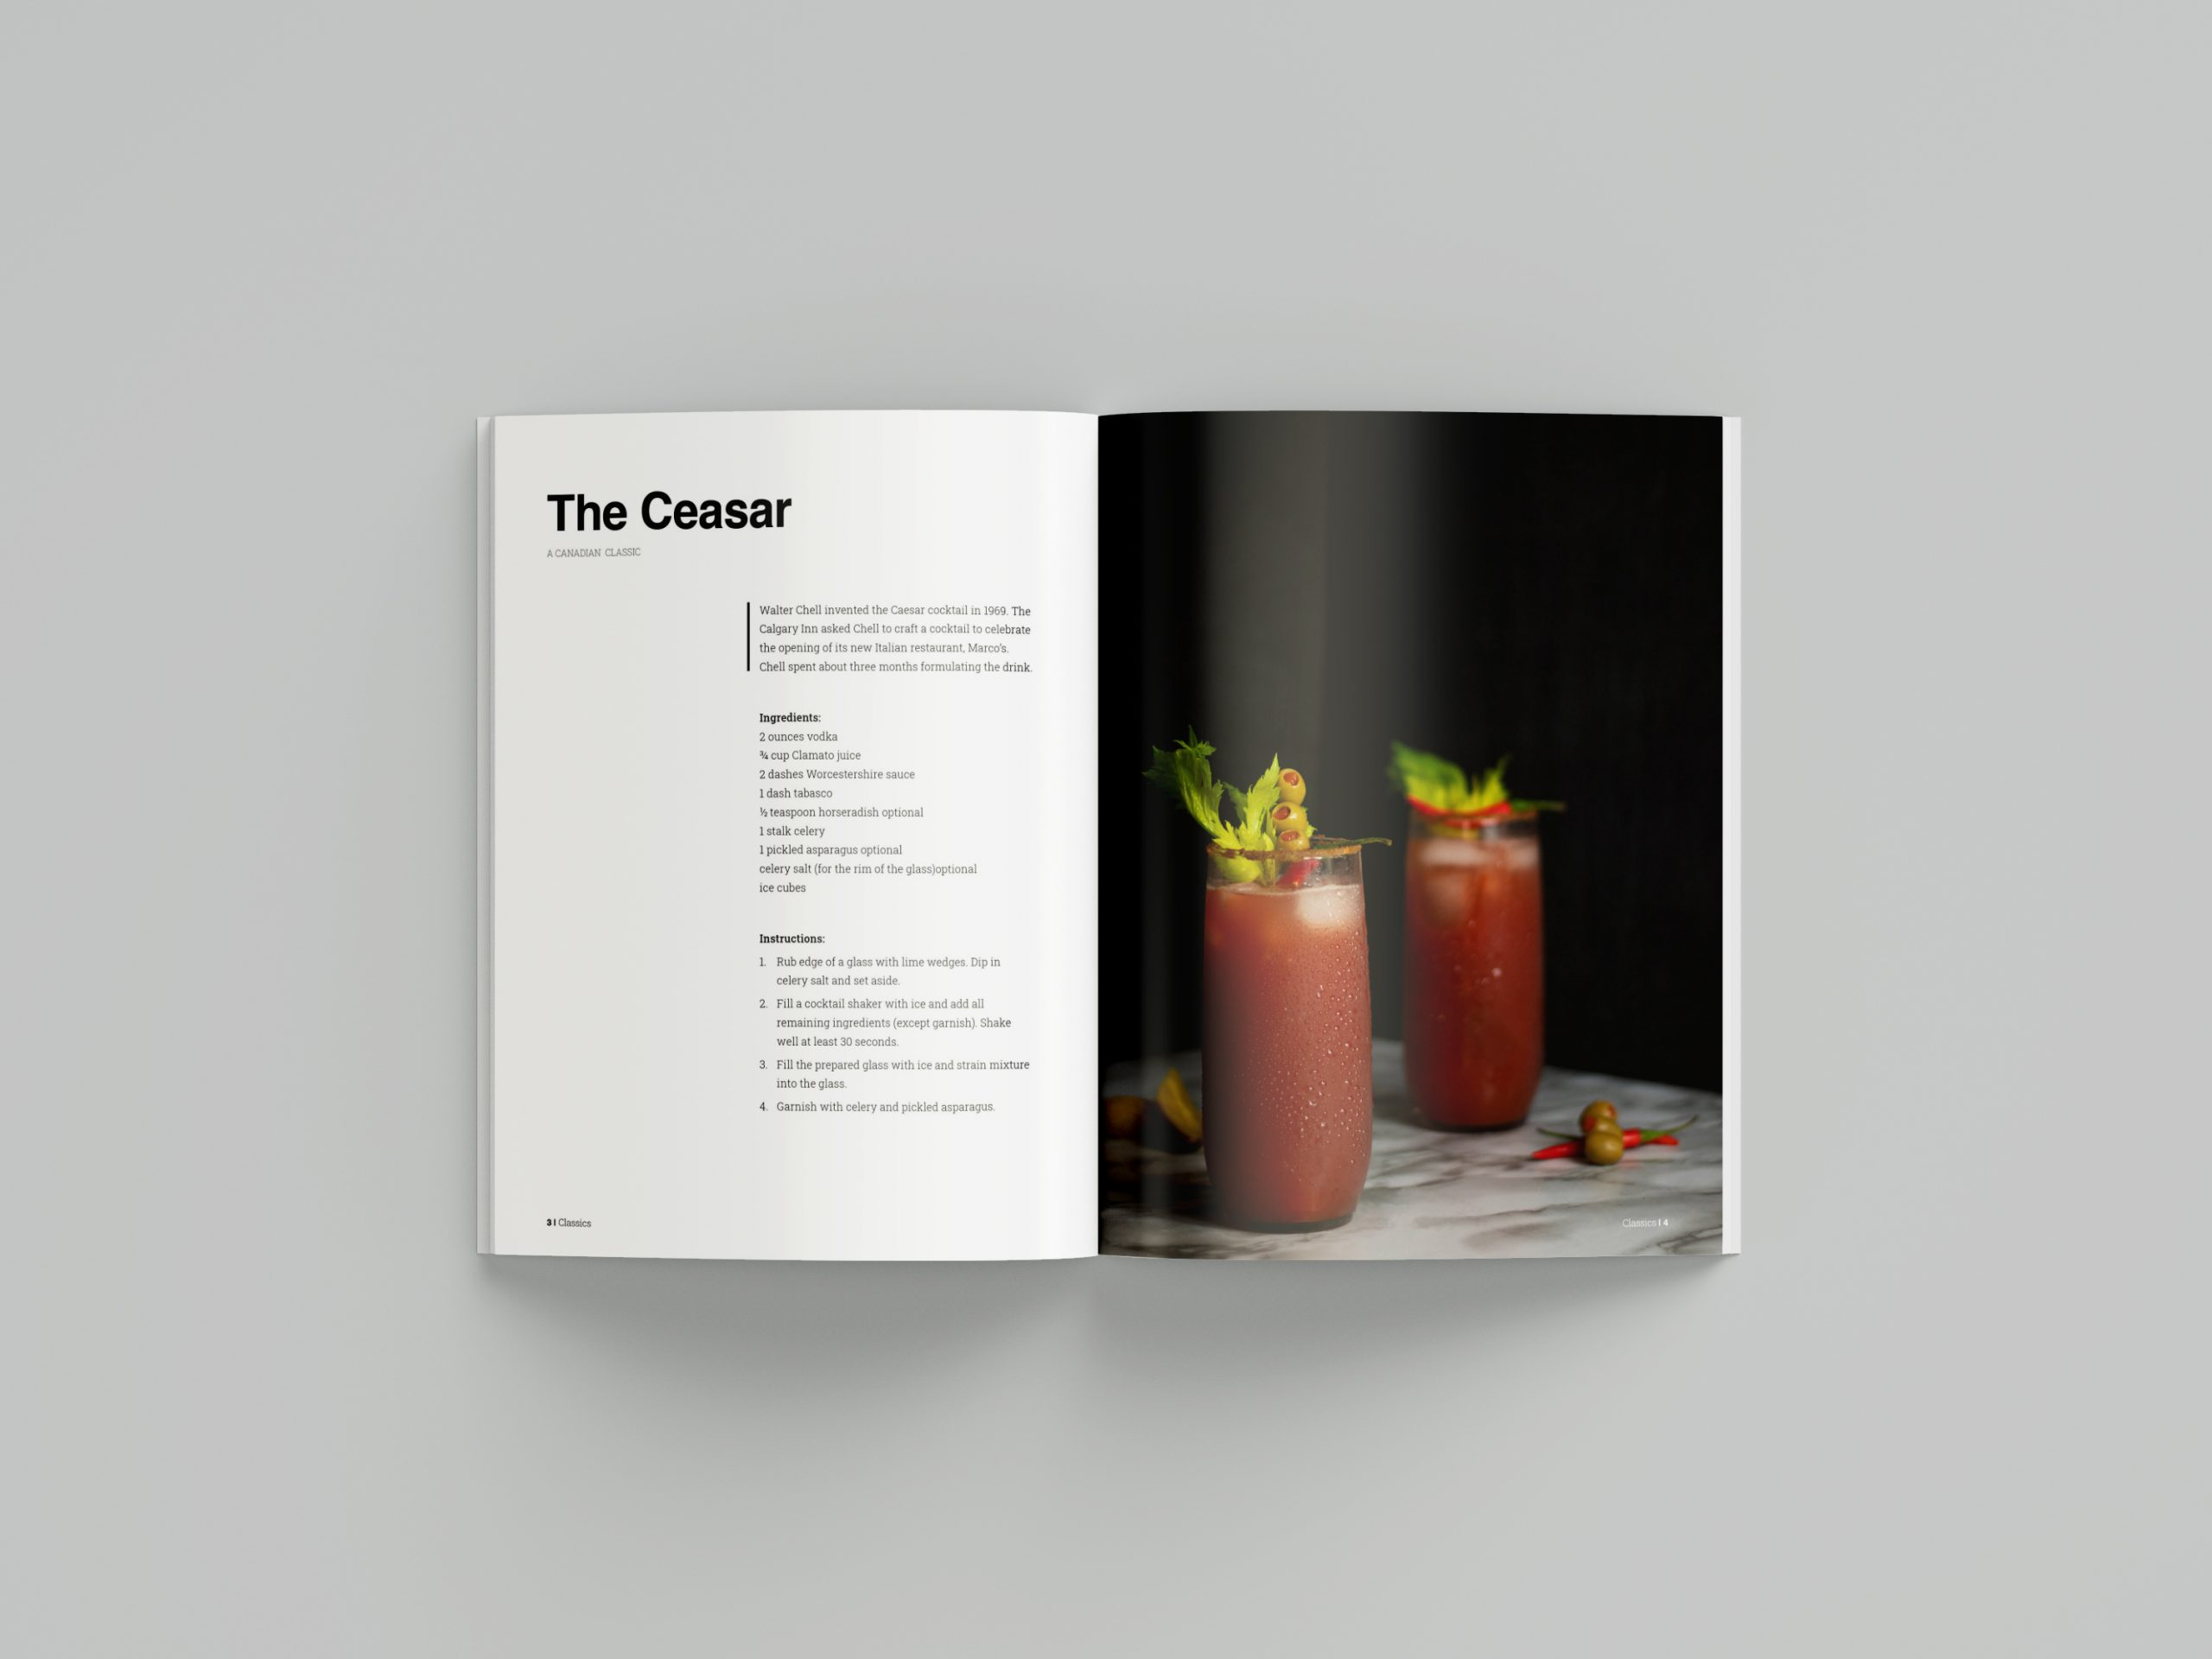 Recipe book magazine open on a blank surface